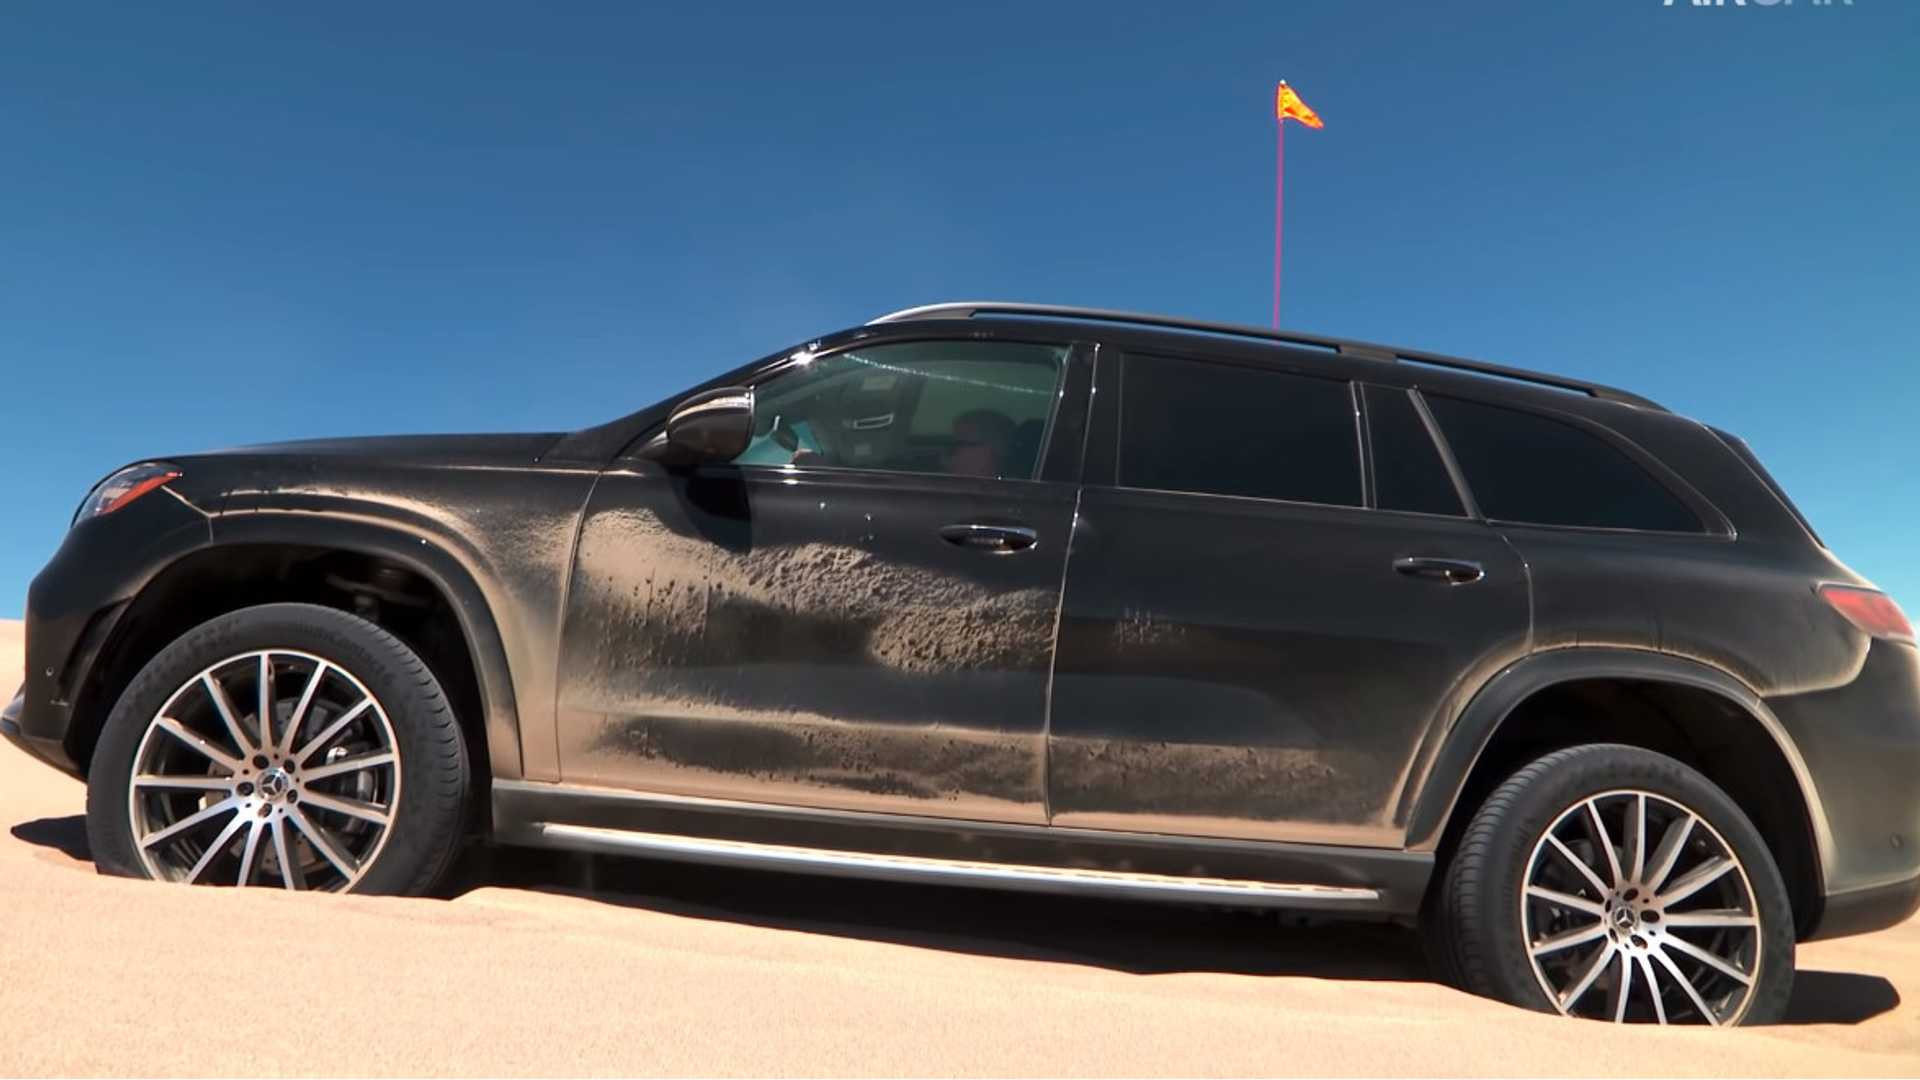 Watch The New Mercedes Benz Gls Bounce Itself Out Of A Sand Trap